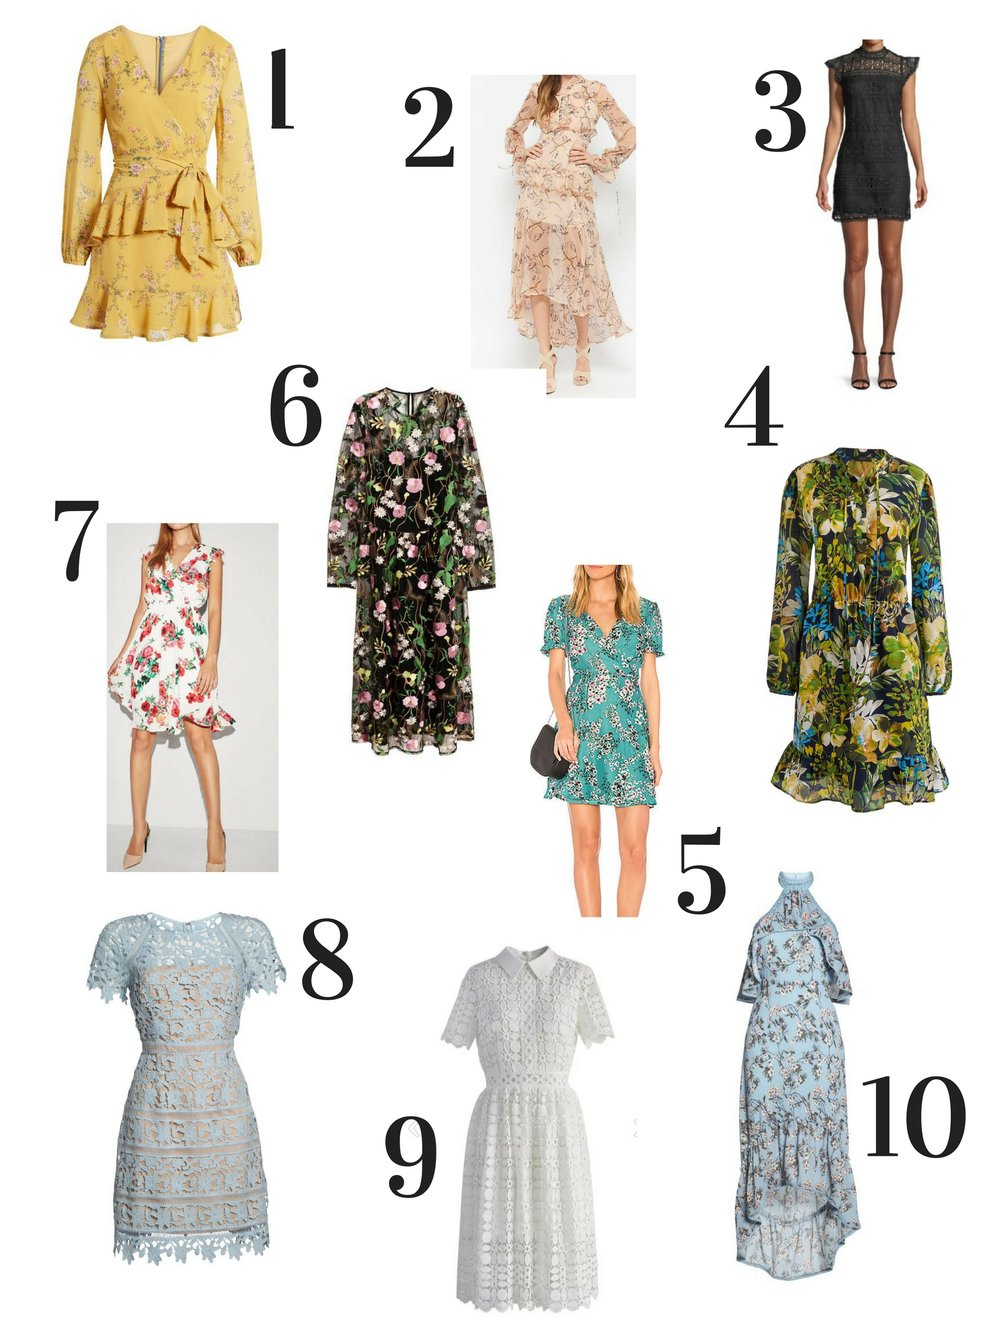 Spring Outfit ideas- Spring Dresses - Outfit Ideas for Women - Spring Fashion-  www.heartandseam.com  #heartandseam #springoutfits